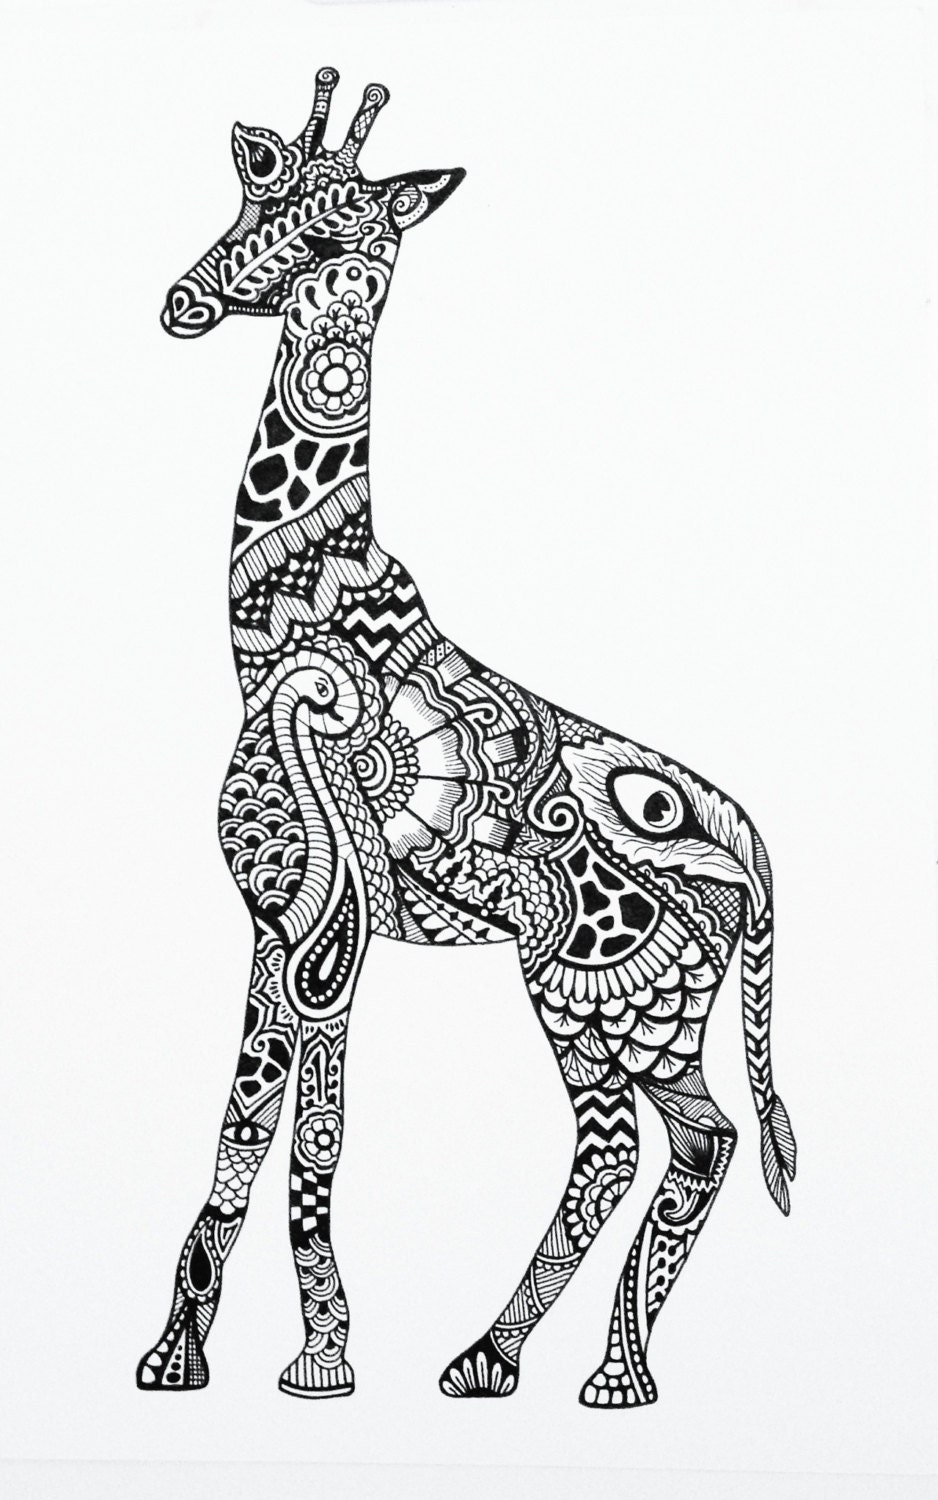 Tribal giraffe design